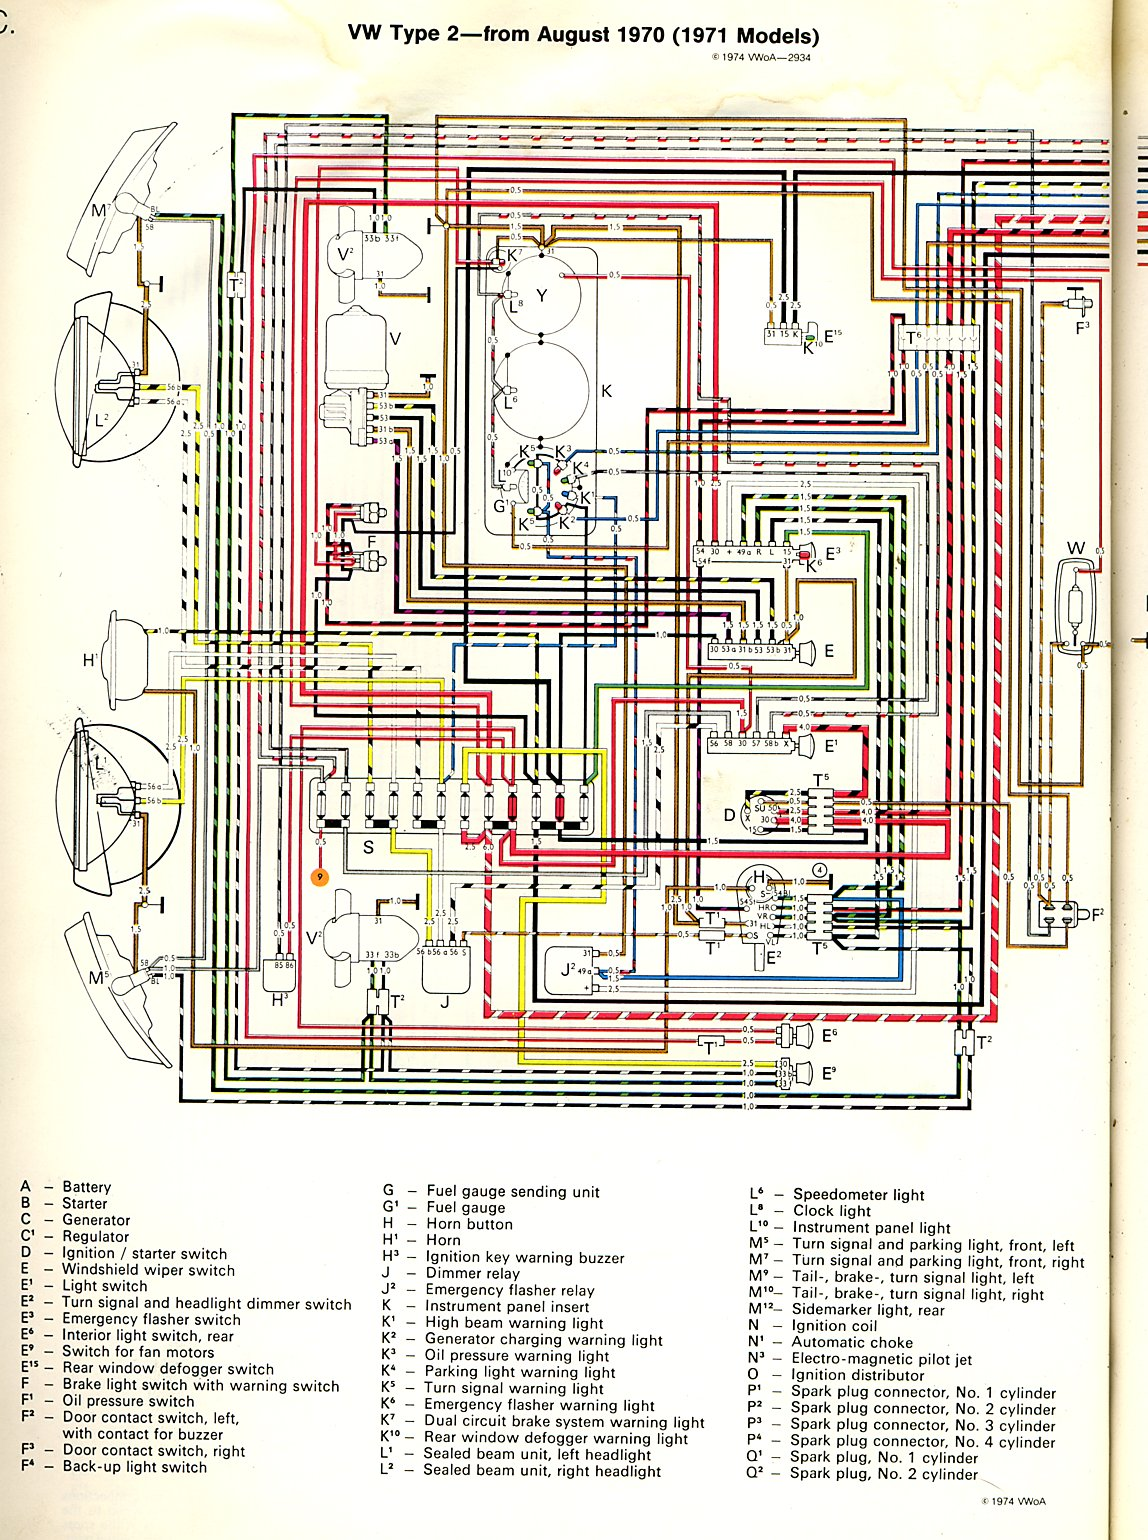 1974 Vw Bus Wiring Diagram Opinions About Volkswagen Beetle Ecm Thesamba Com Type 2 Diagrams Rh 74